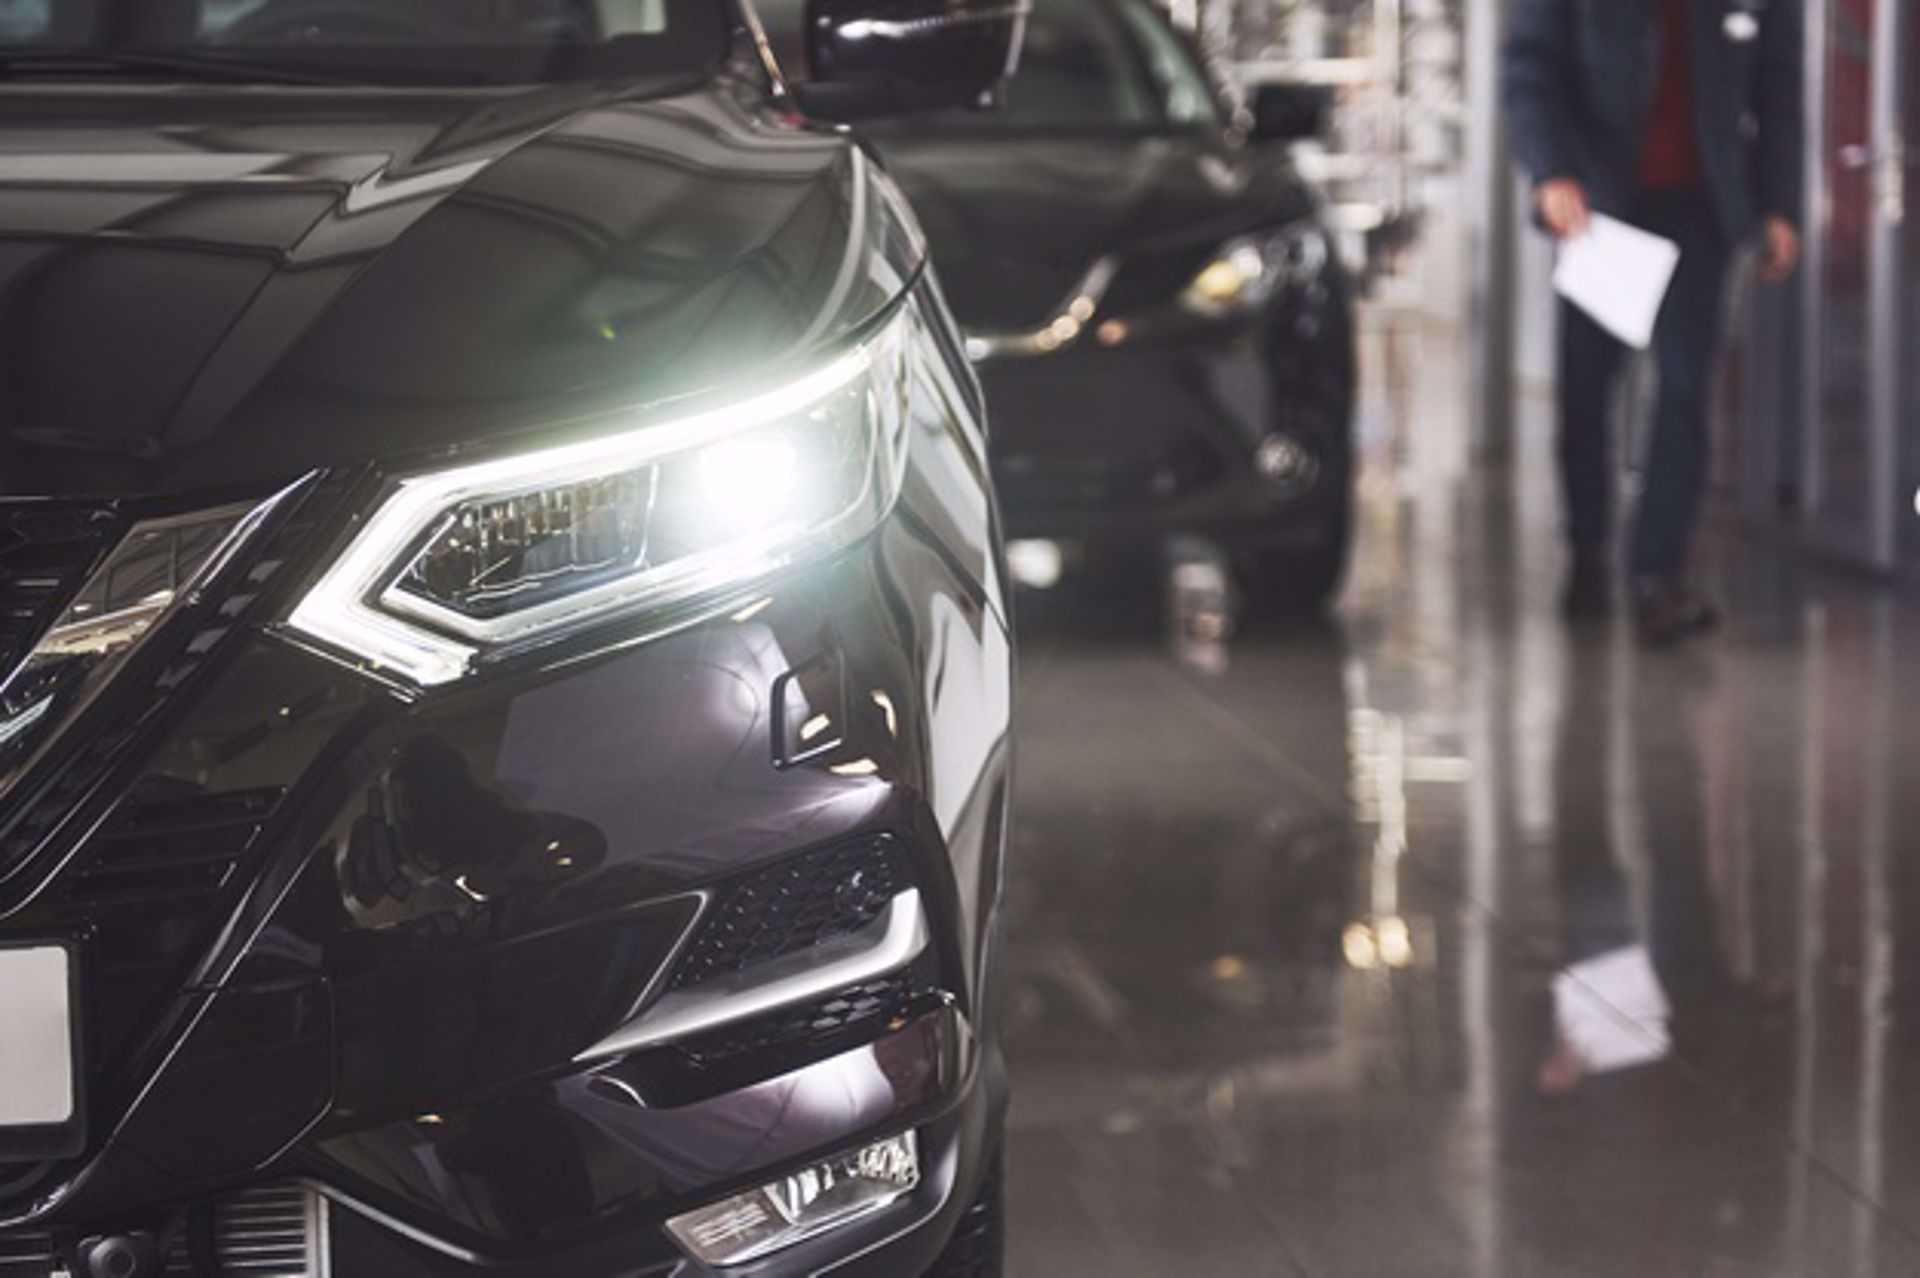 7 Myths About Buying a Car That Everyone Believes are True